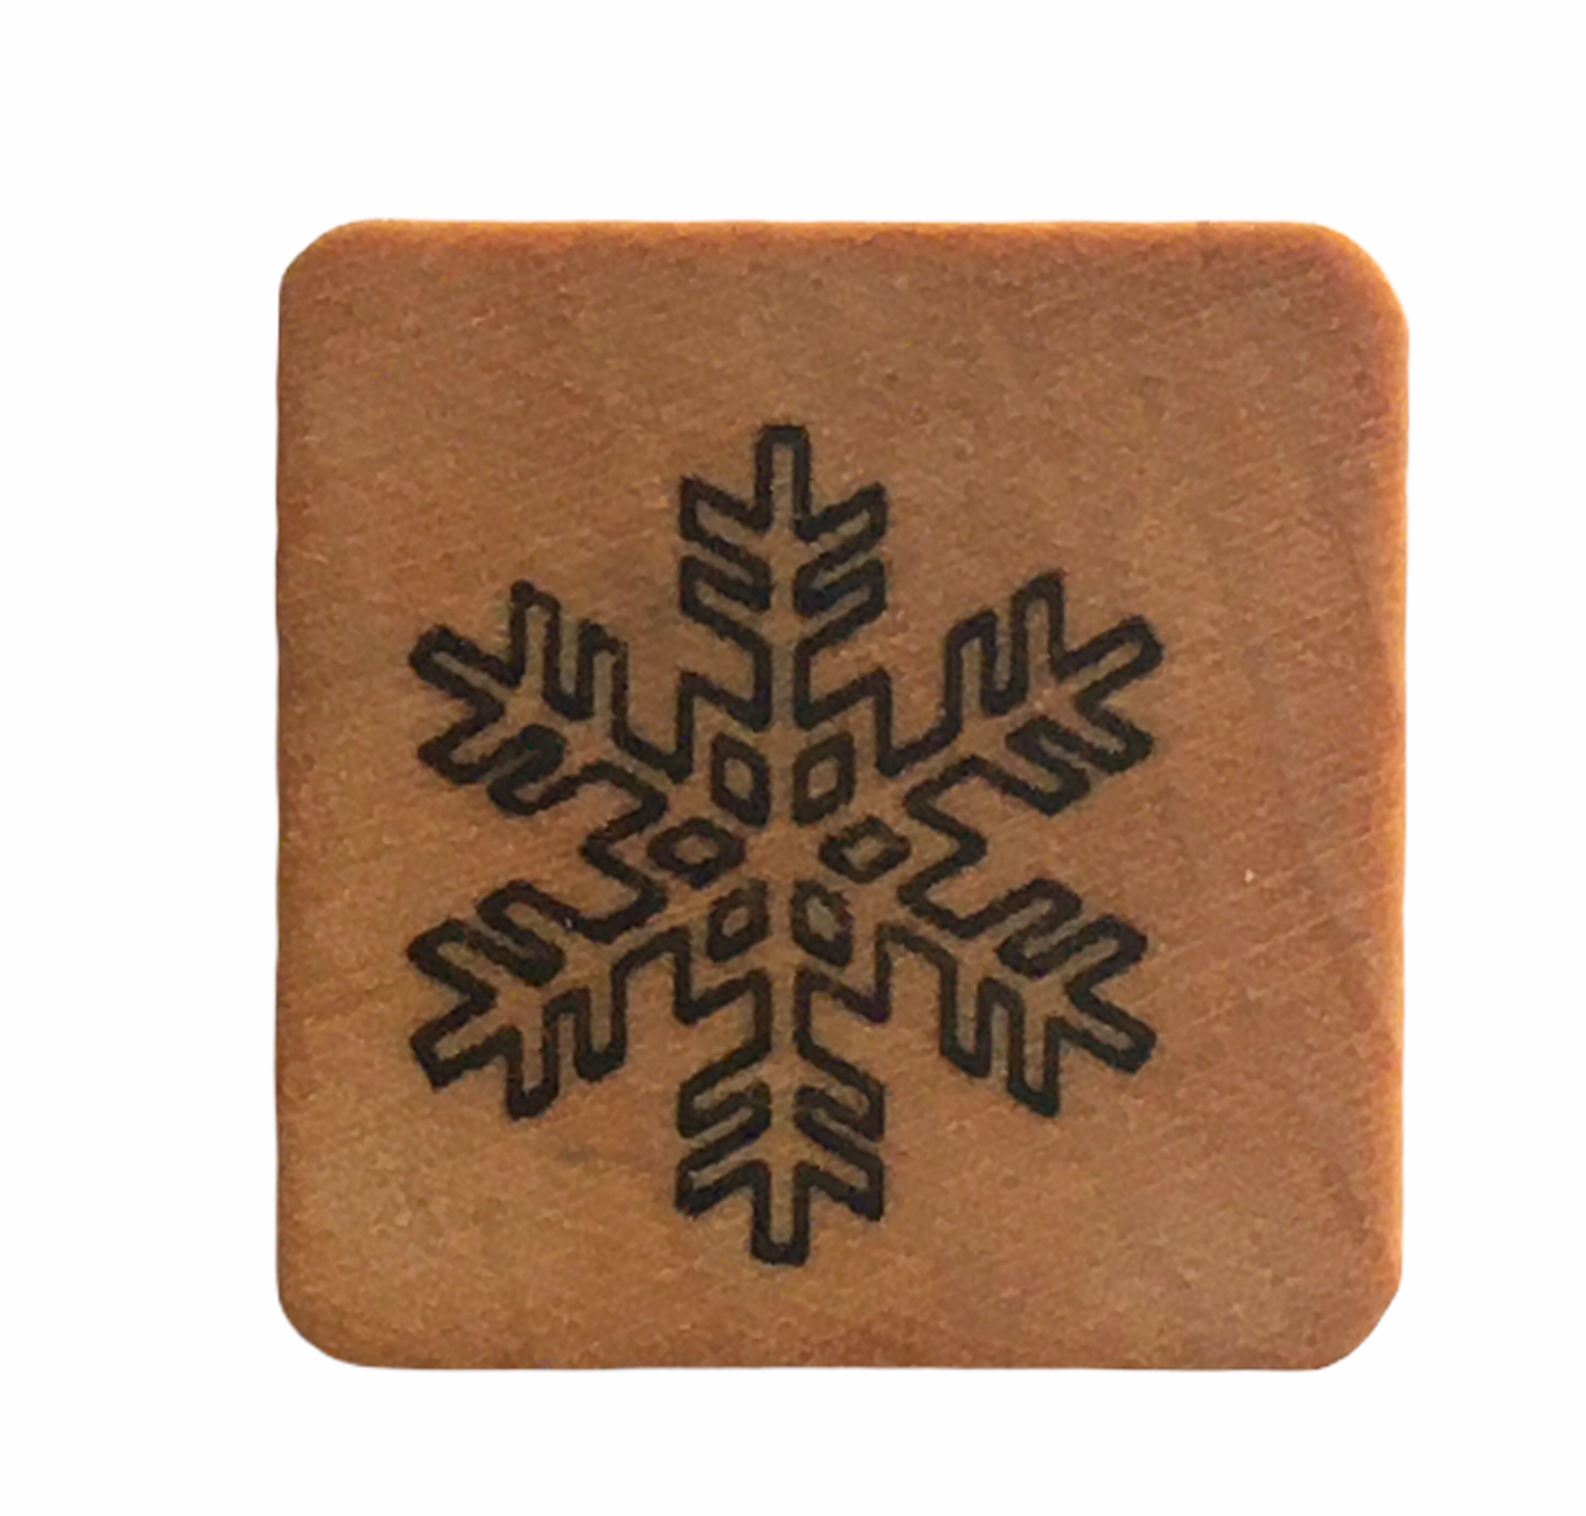 Comotion Rubber Stamp Snowflake Snow Winter Holidays Christmas Card Making Art - $3.00